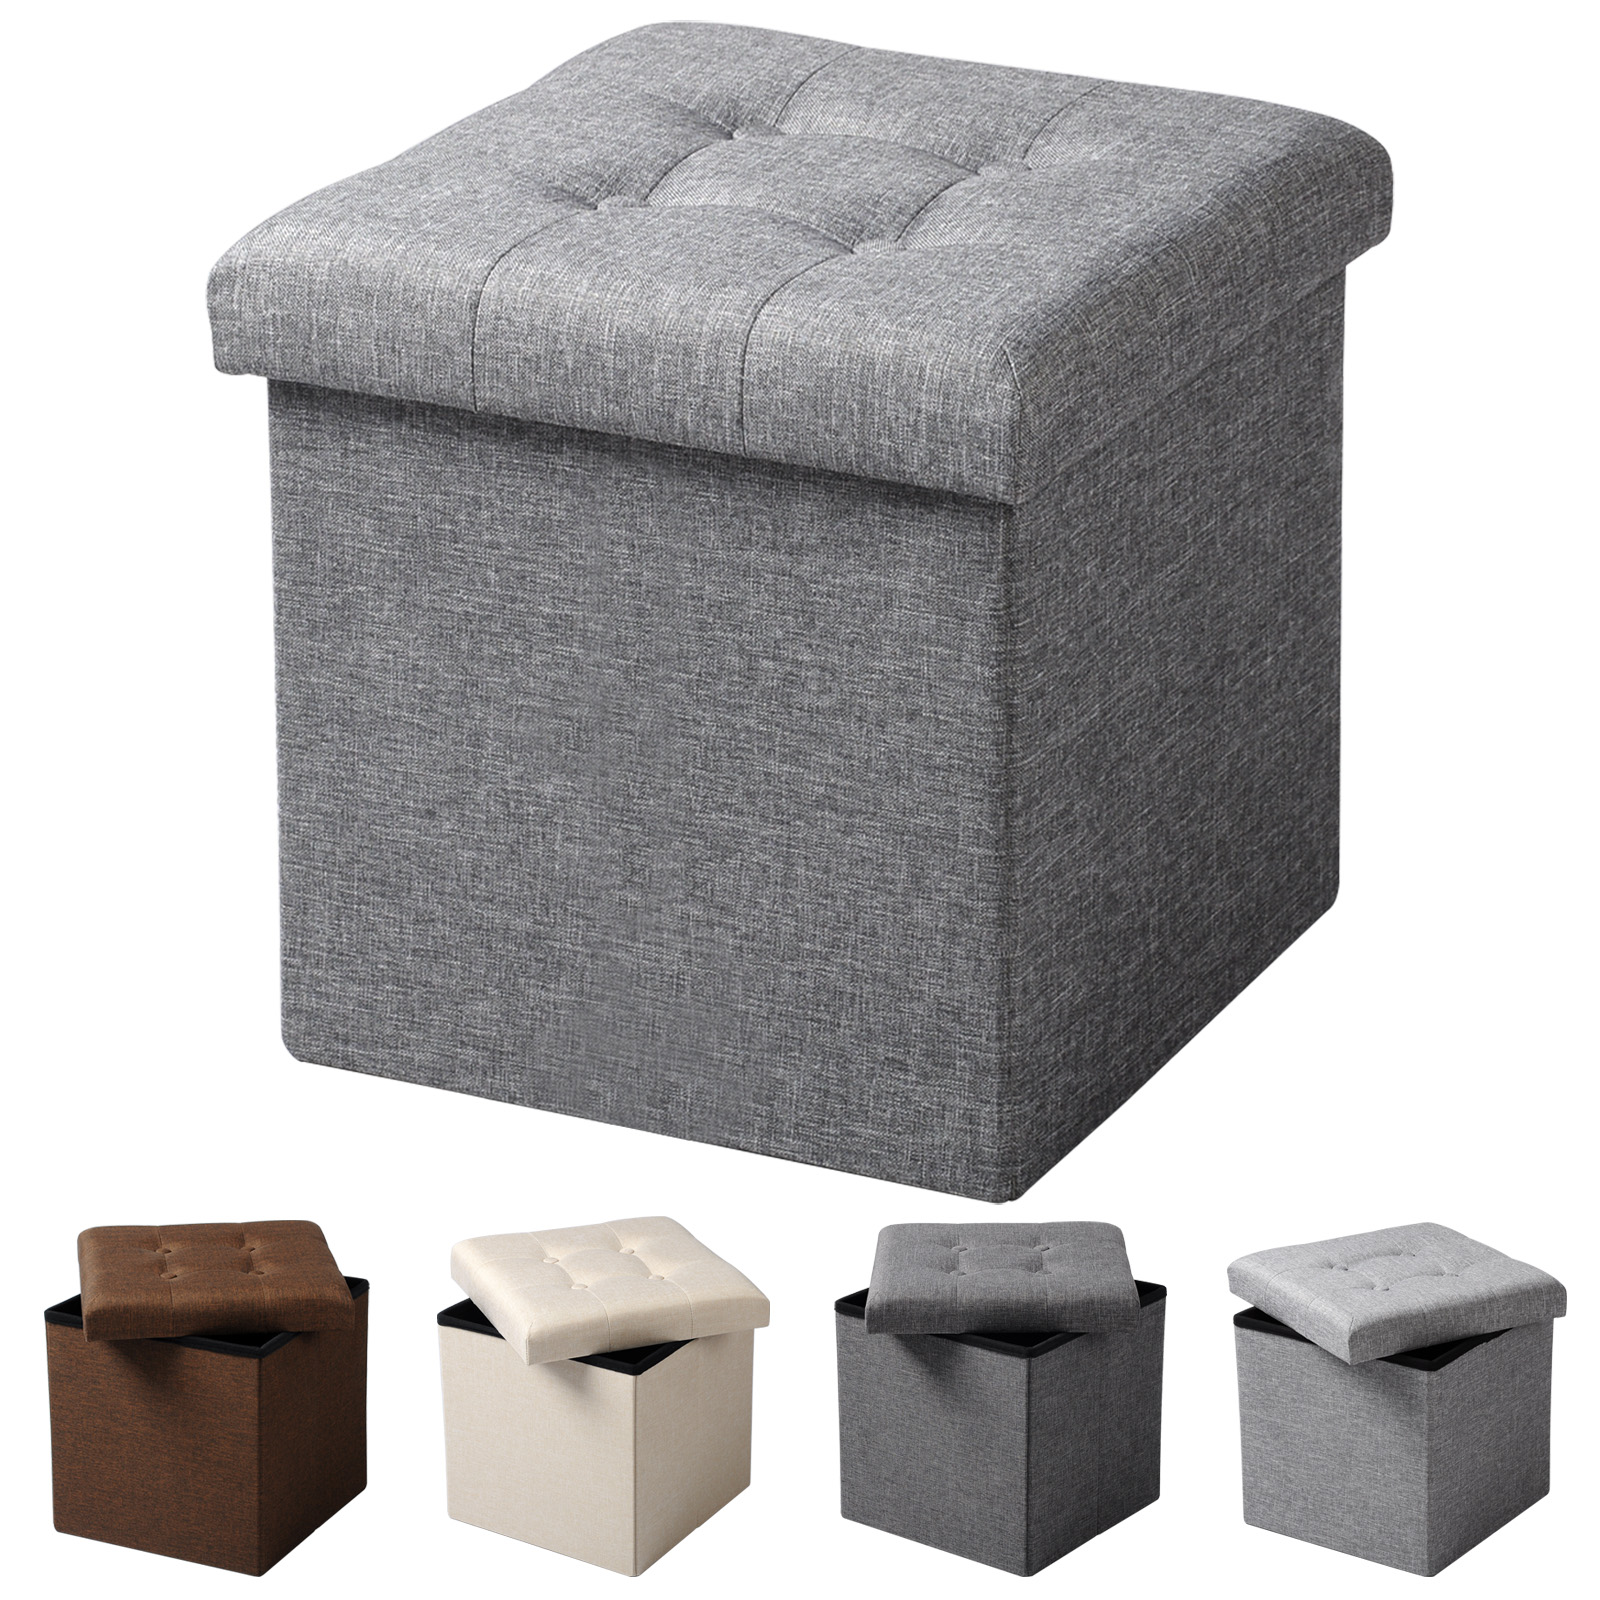 tabouret pliable pouf coffre bo te de rangement si ge banquette en lin f200 ebay. Black Bedroom Furniture Sets. Home Design Ideas